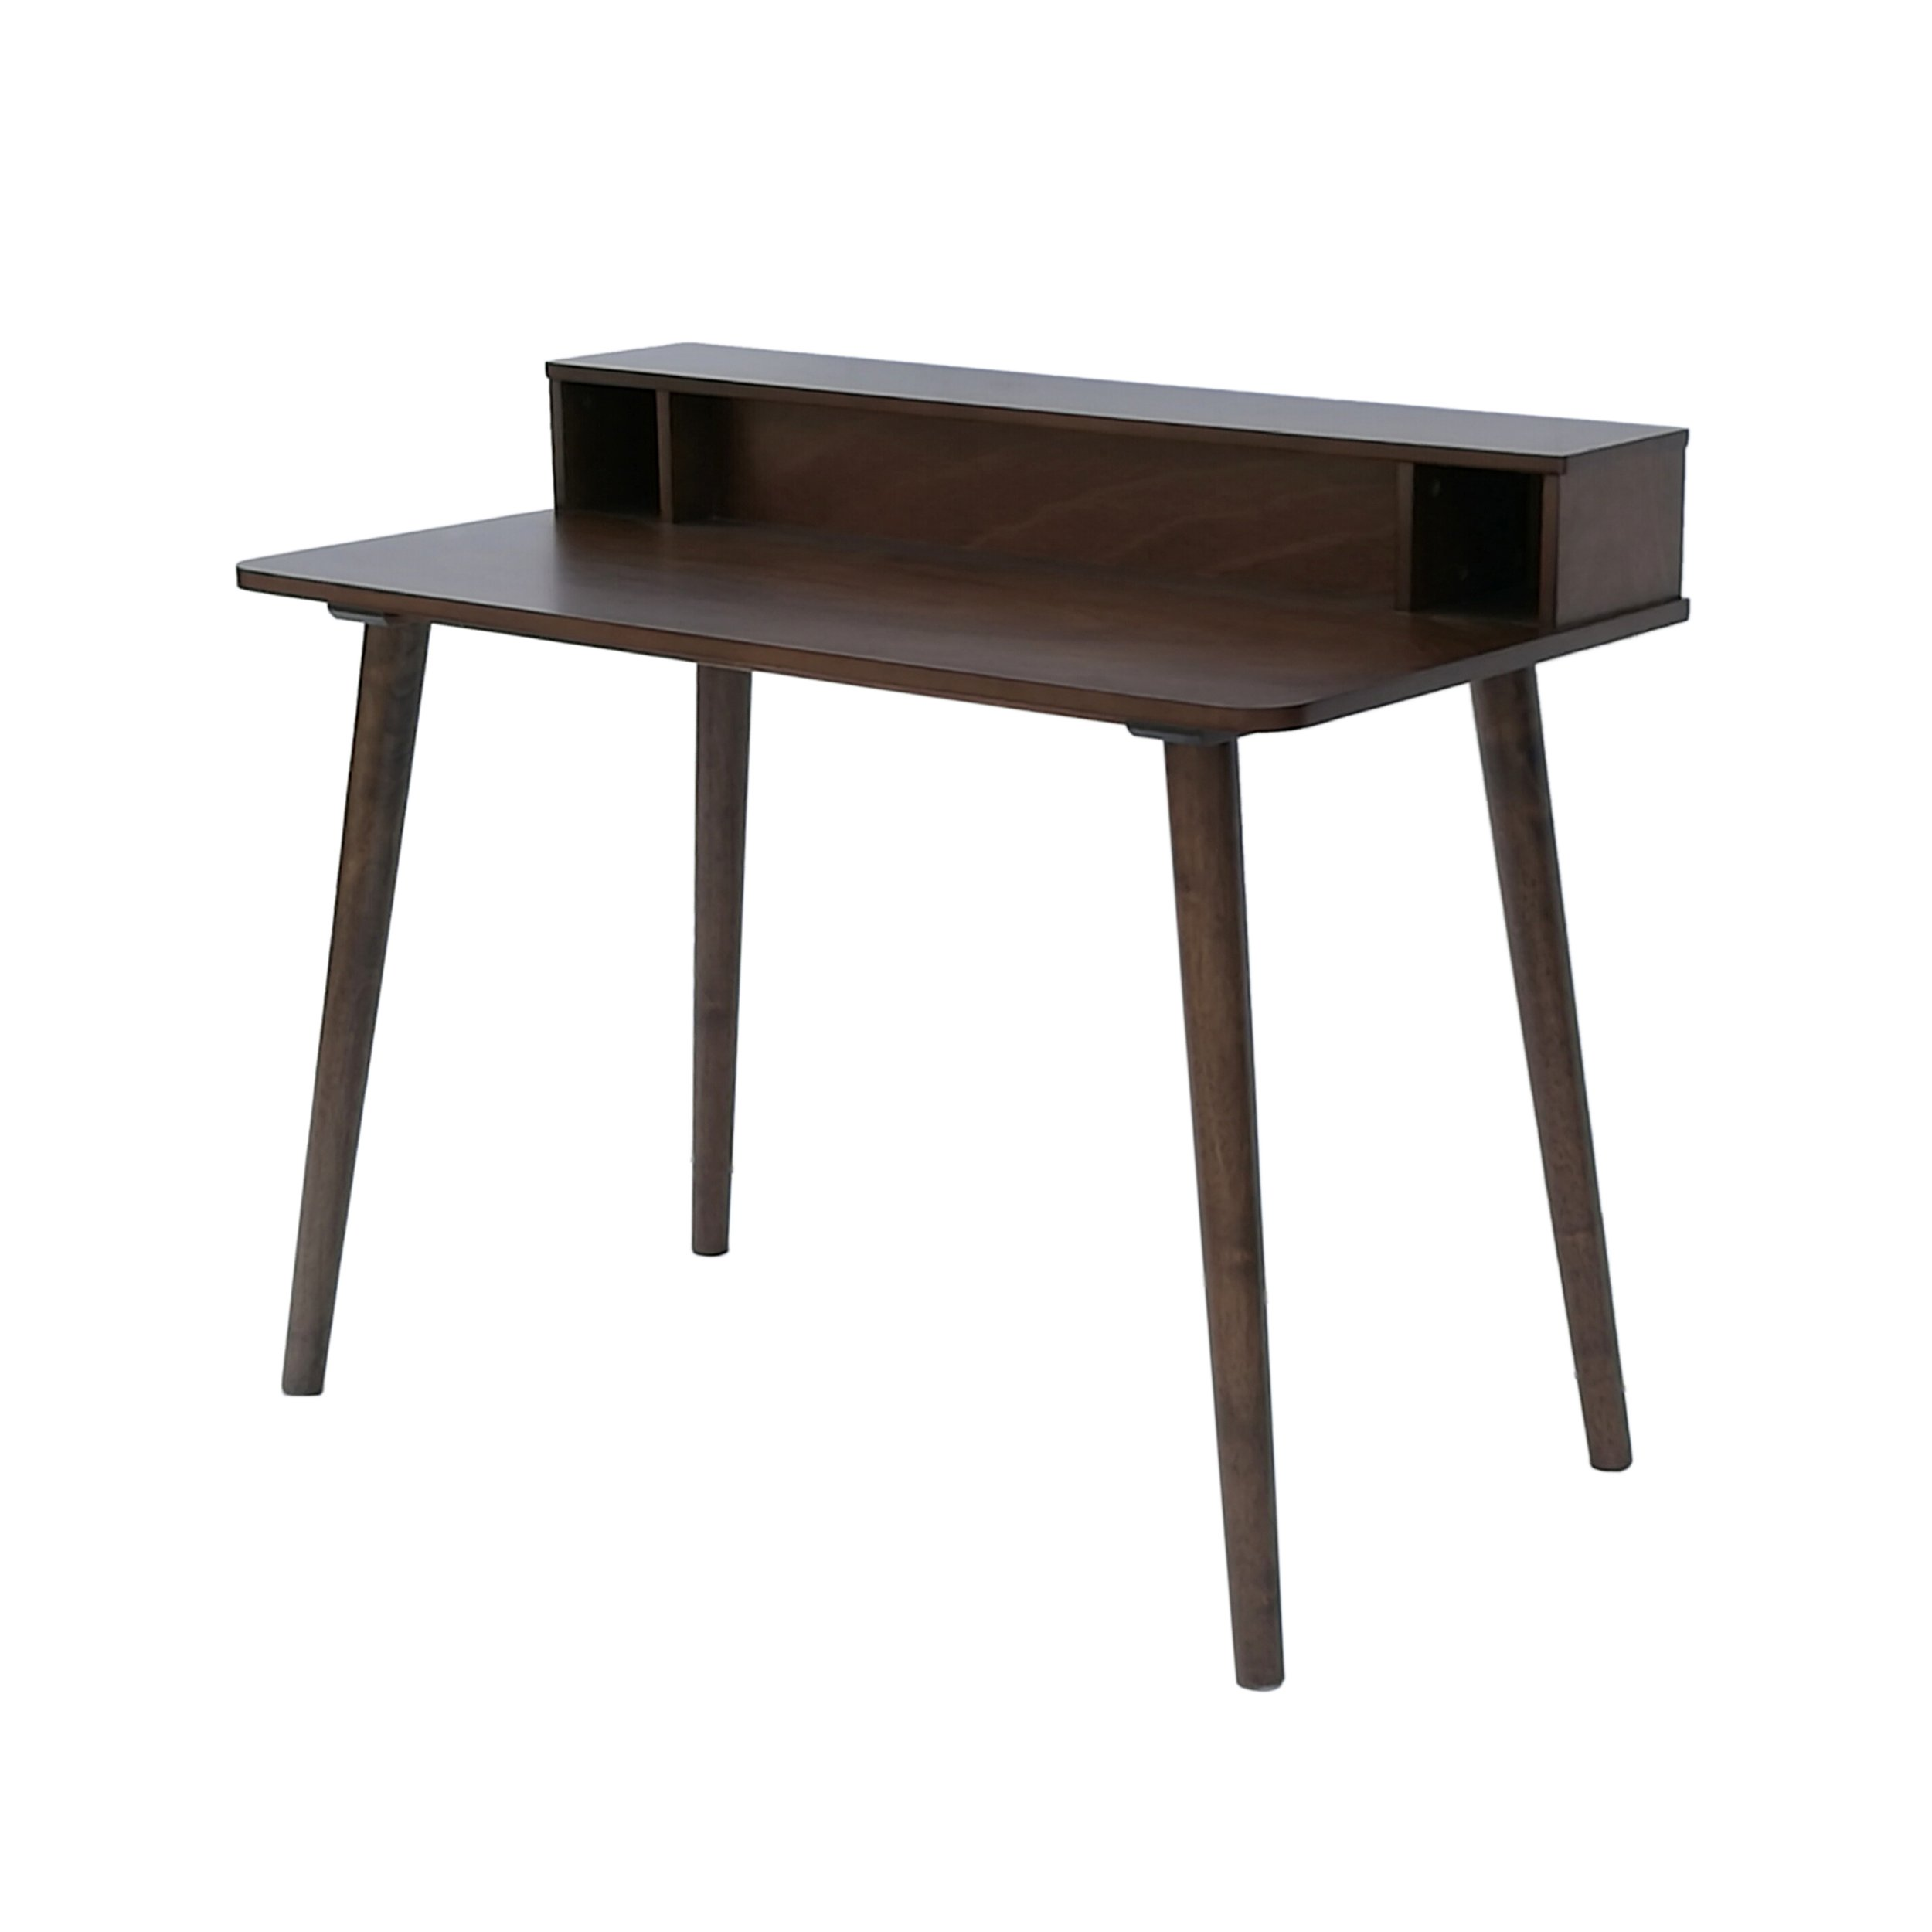 Great Deal Furniture 304645 Wesley | Mid Century Wood Writing Desk | in Medium Brown, by Great Deal Furniture (Image #1)